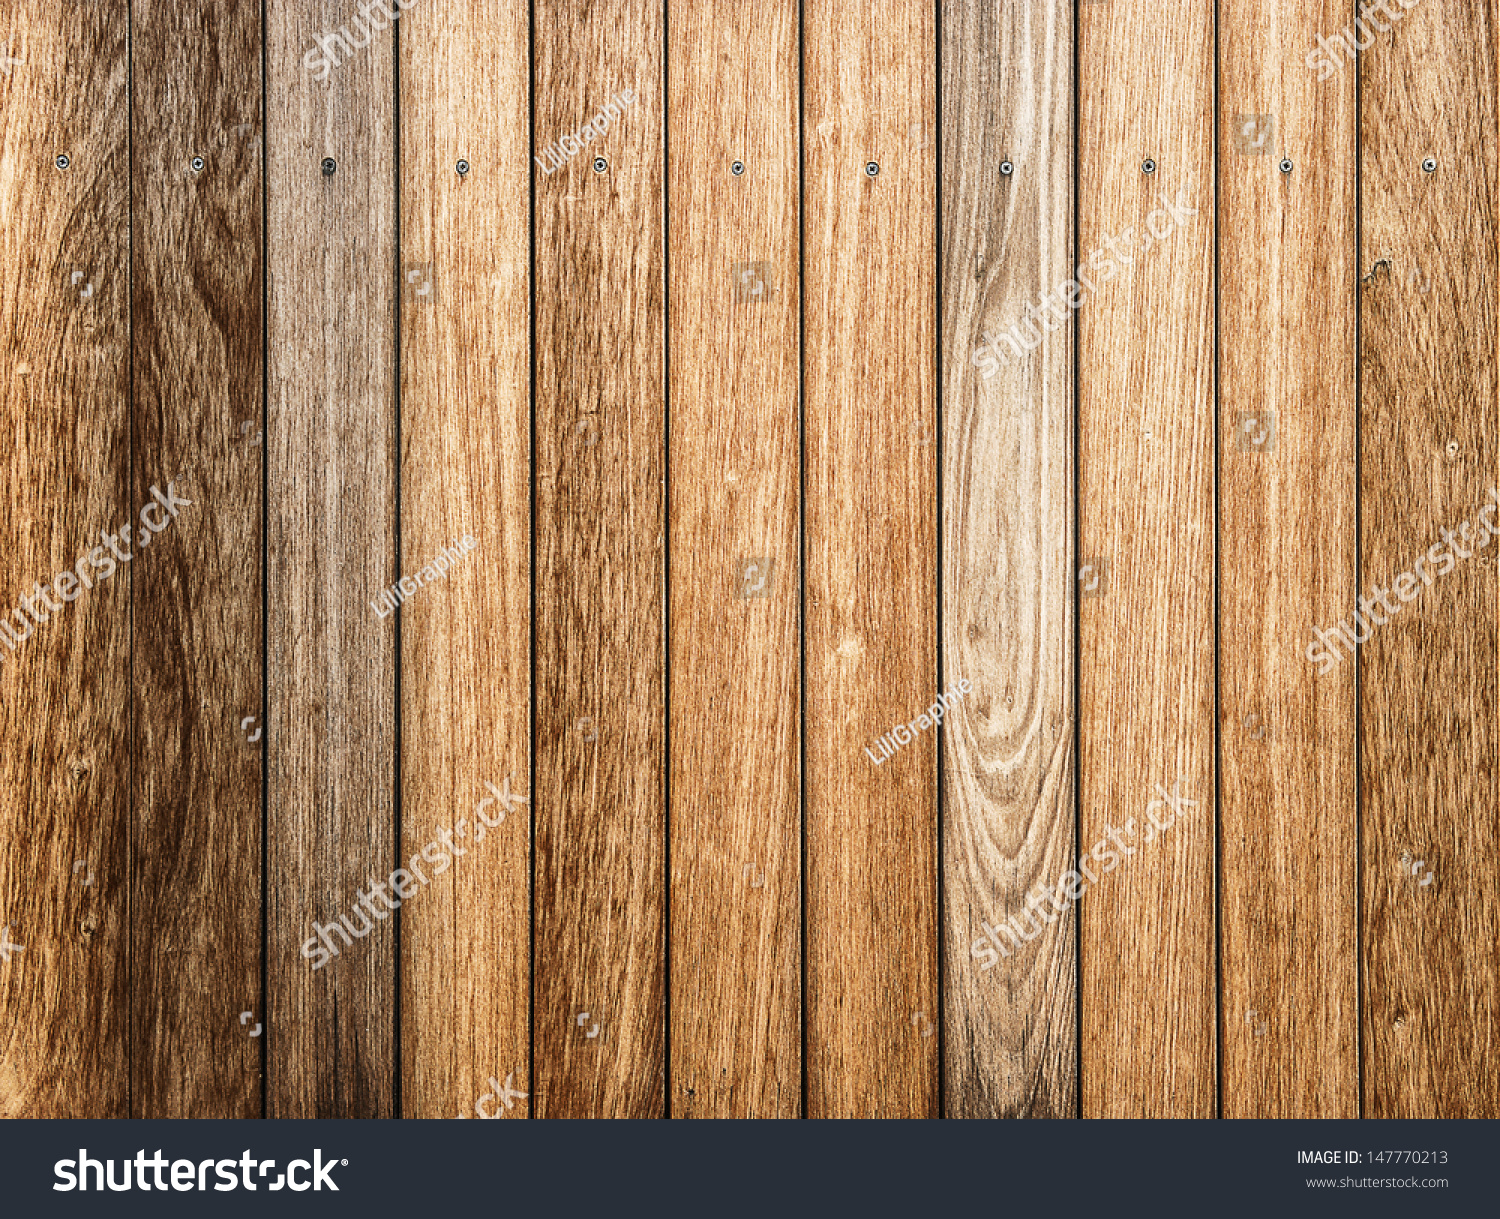 vintage wooden panel background abstract rustic stock